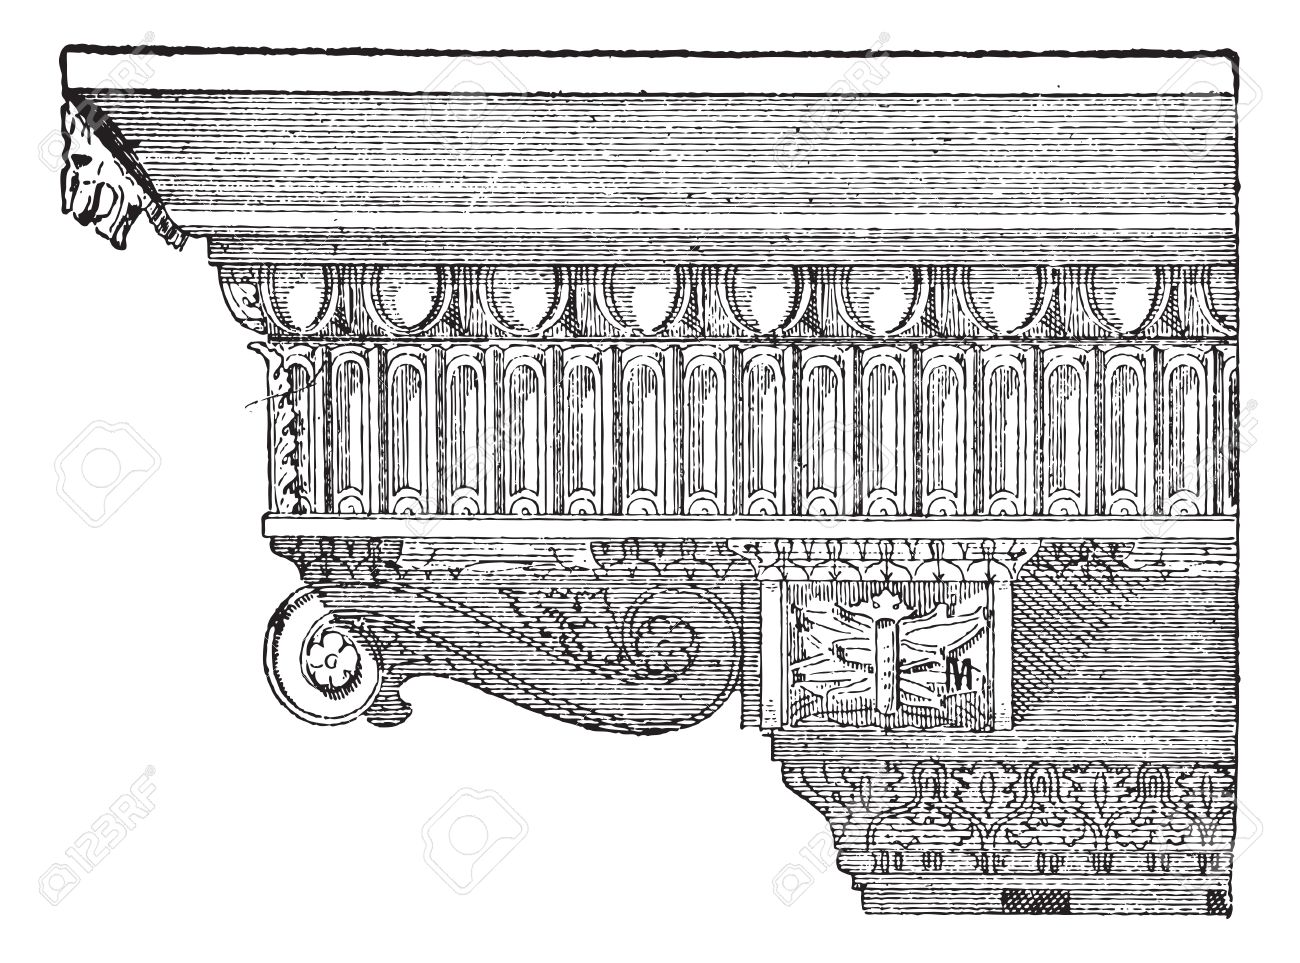 Corbel Forming An Entablature At The Temple Of Jupiter In Rome Italy